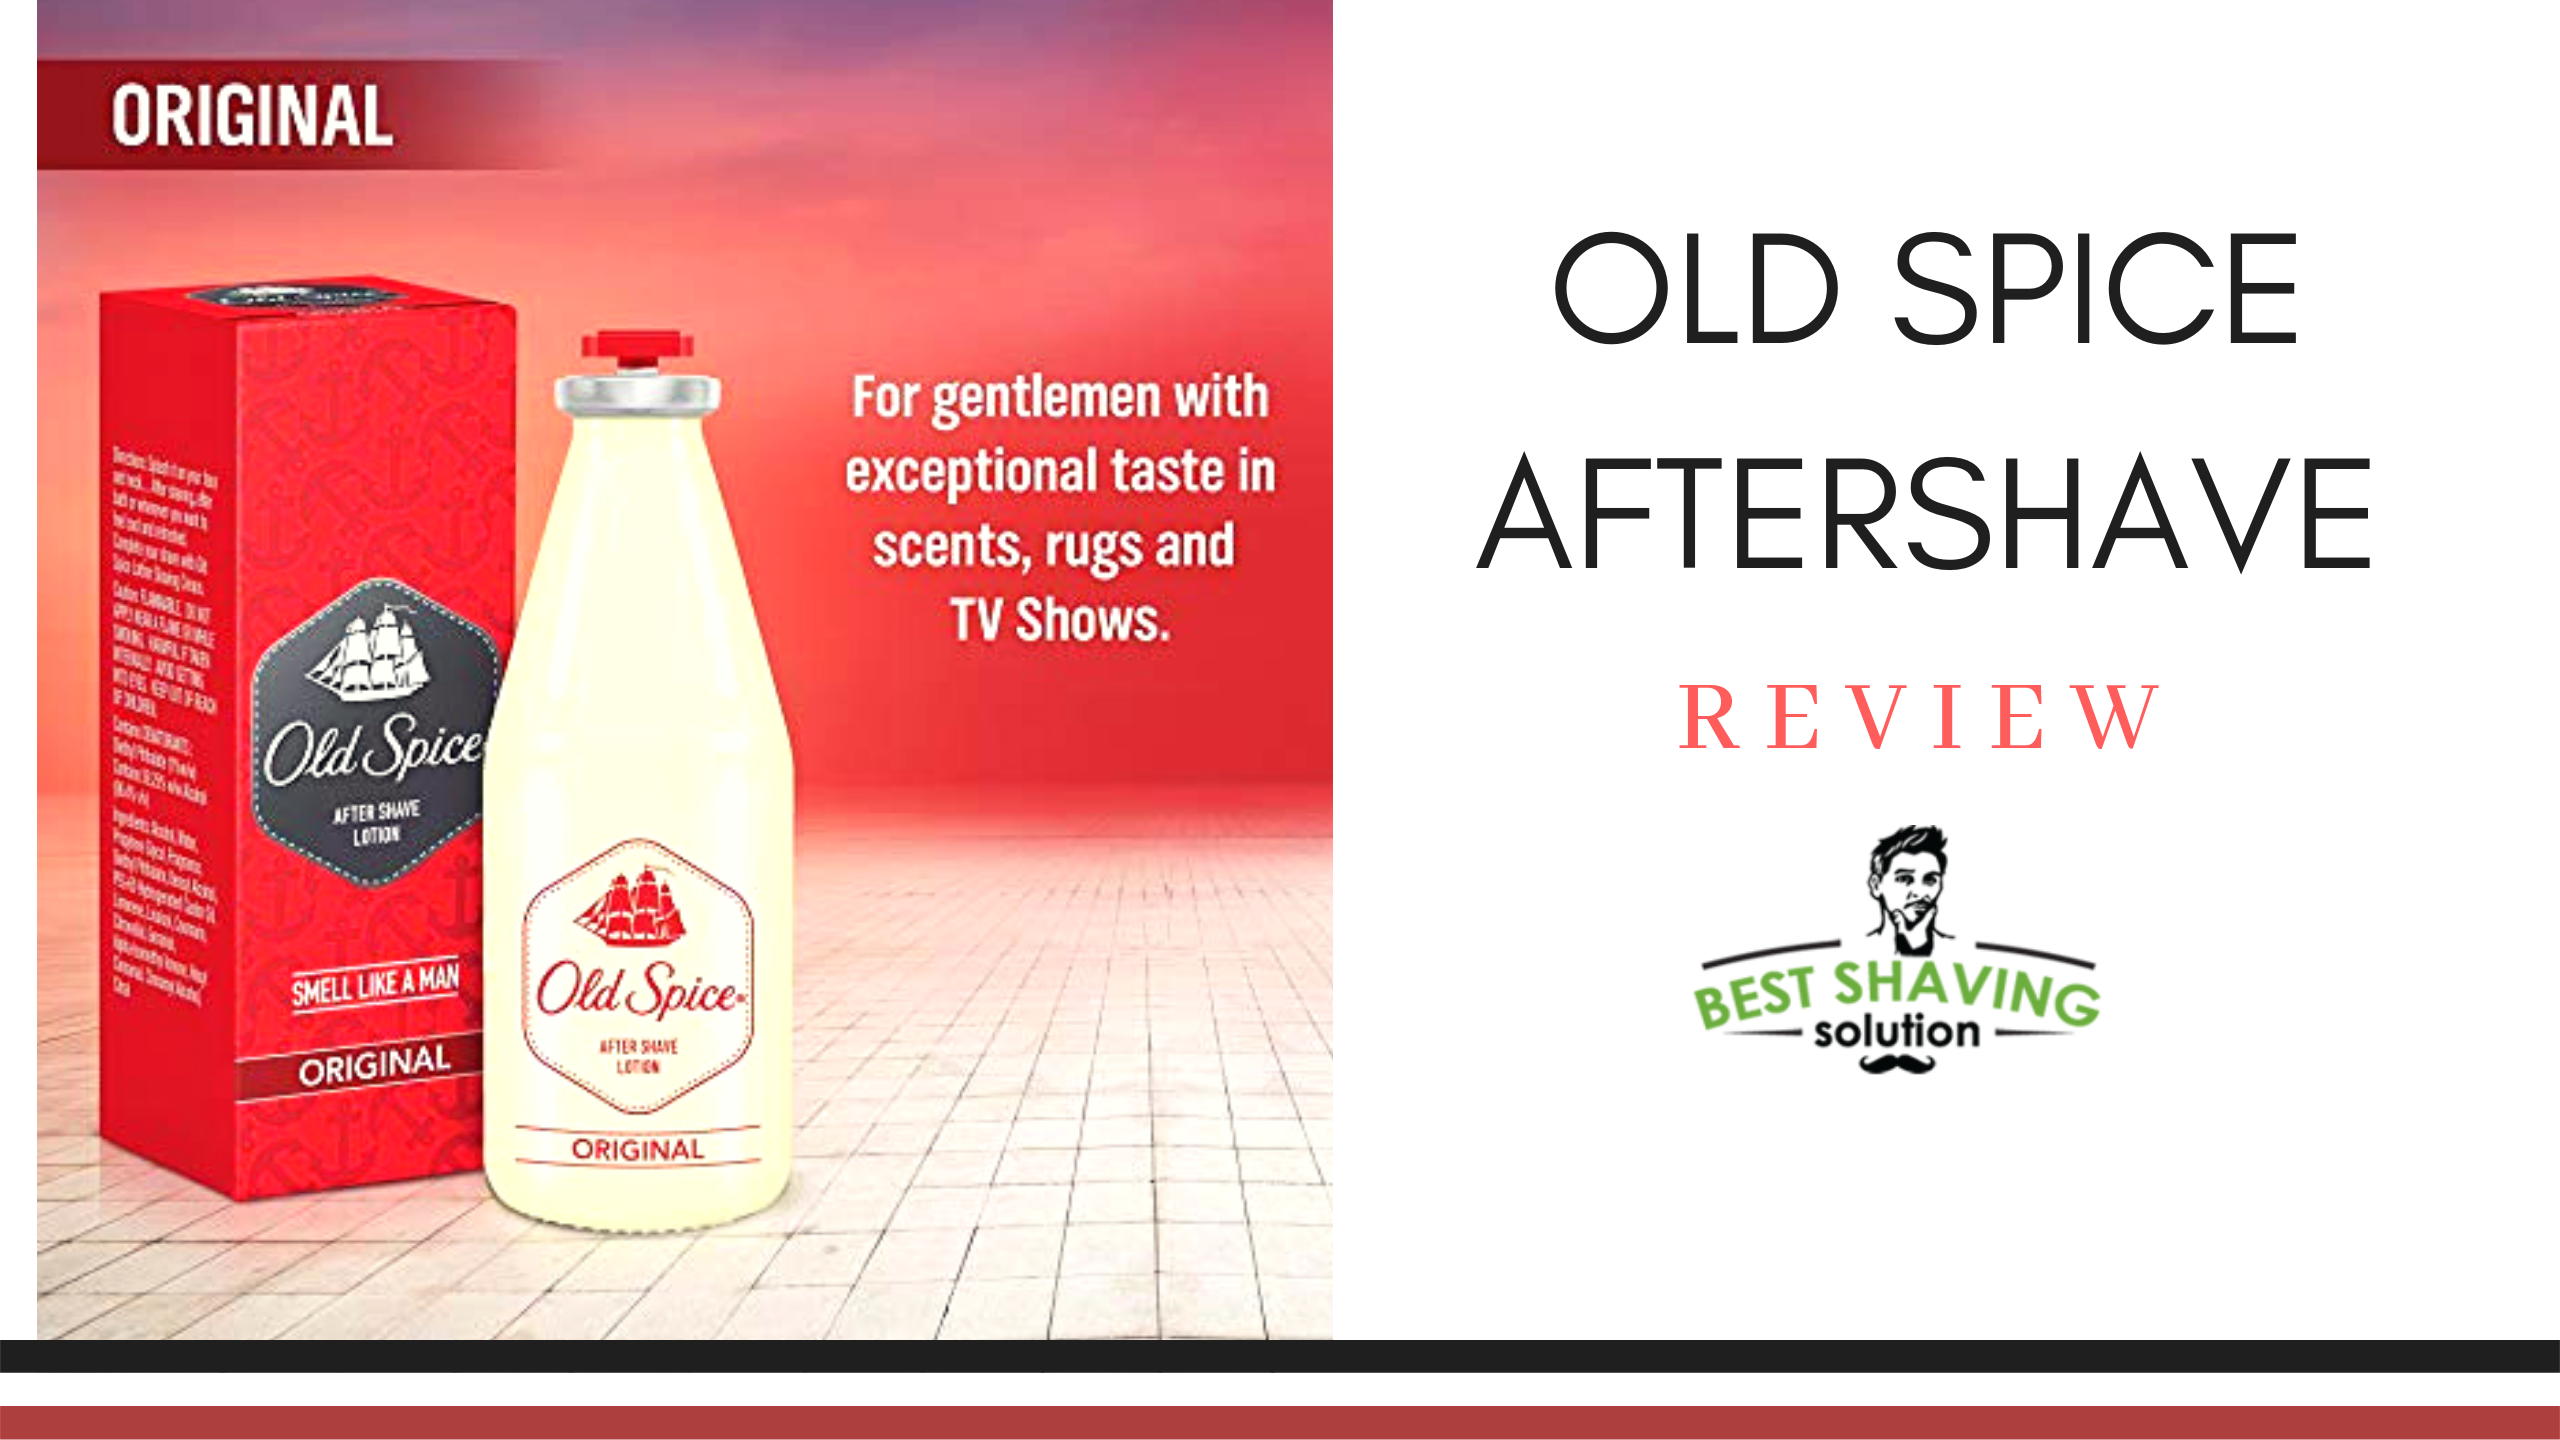 Old Spice aftershave original contains an alcohol content that is reminiscent of mulled wine